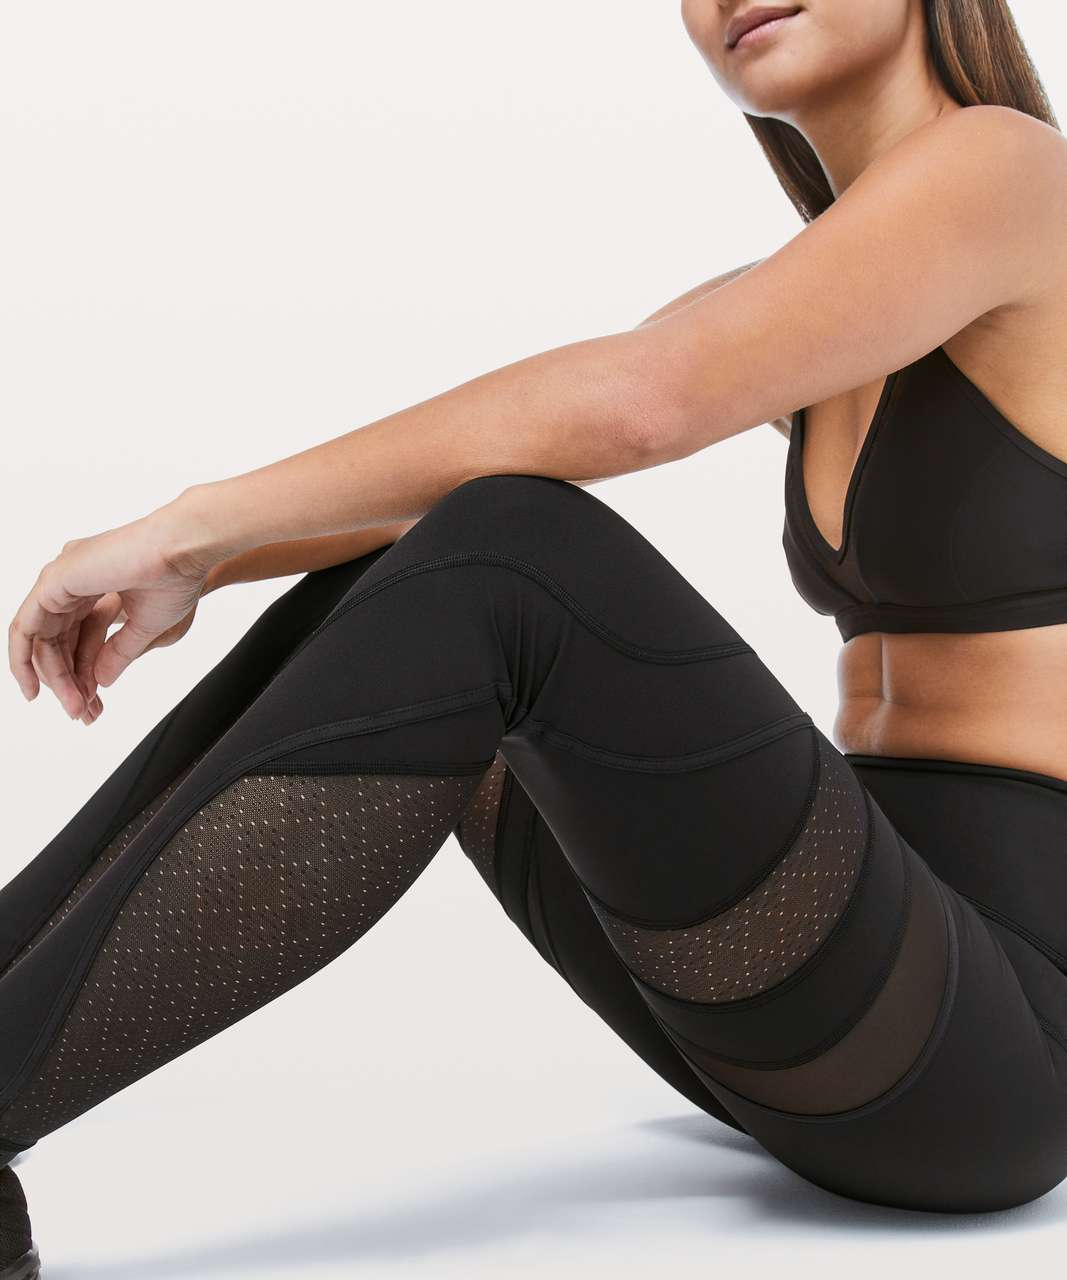 "Lululemon Wunder Under High-Rise Tight *Mesh 28"" - Black (First Release)"